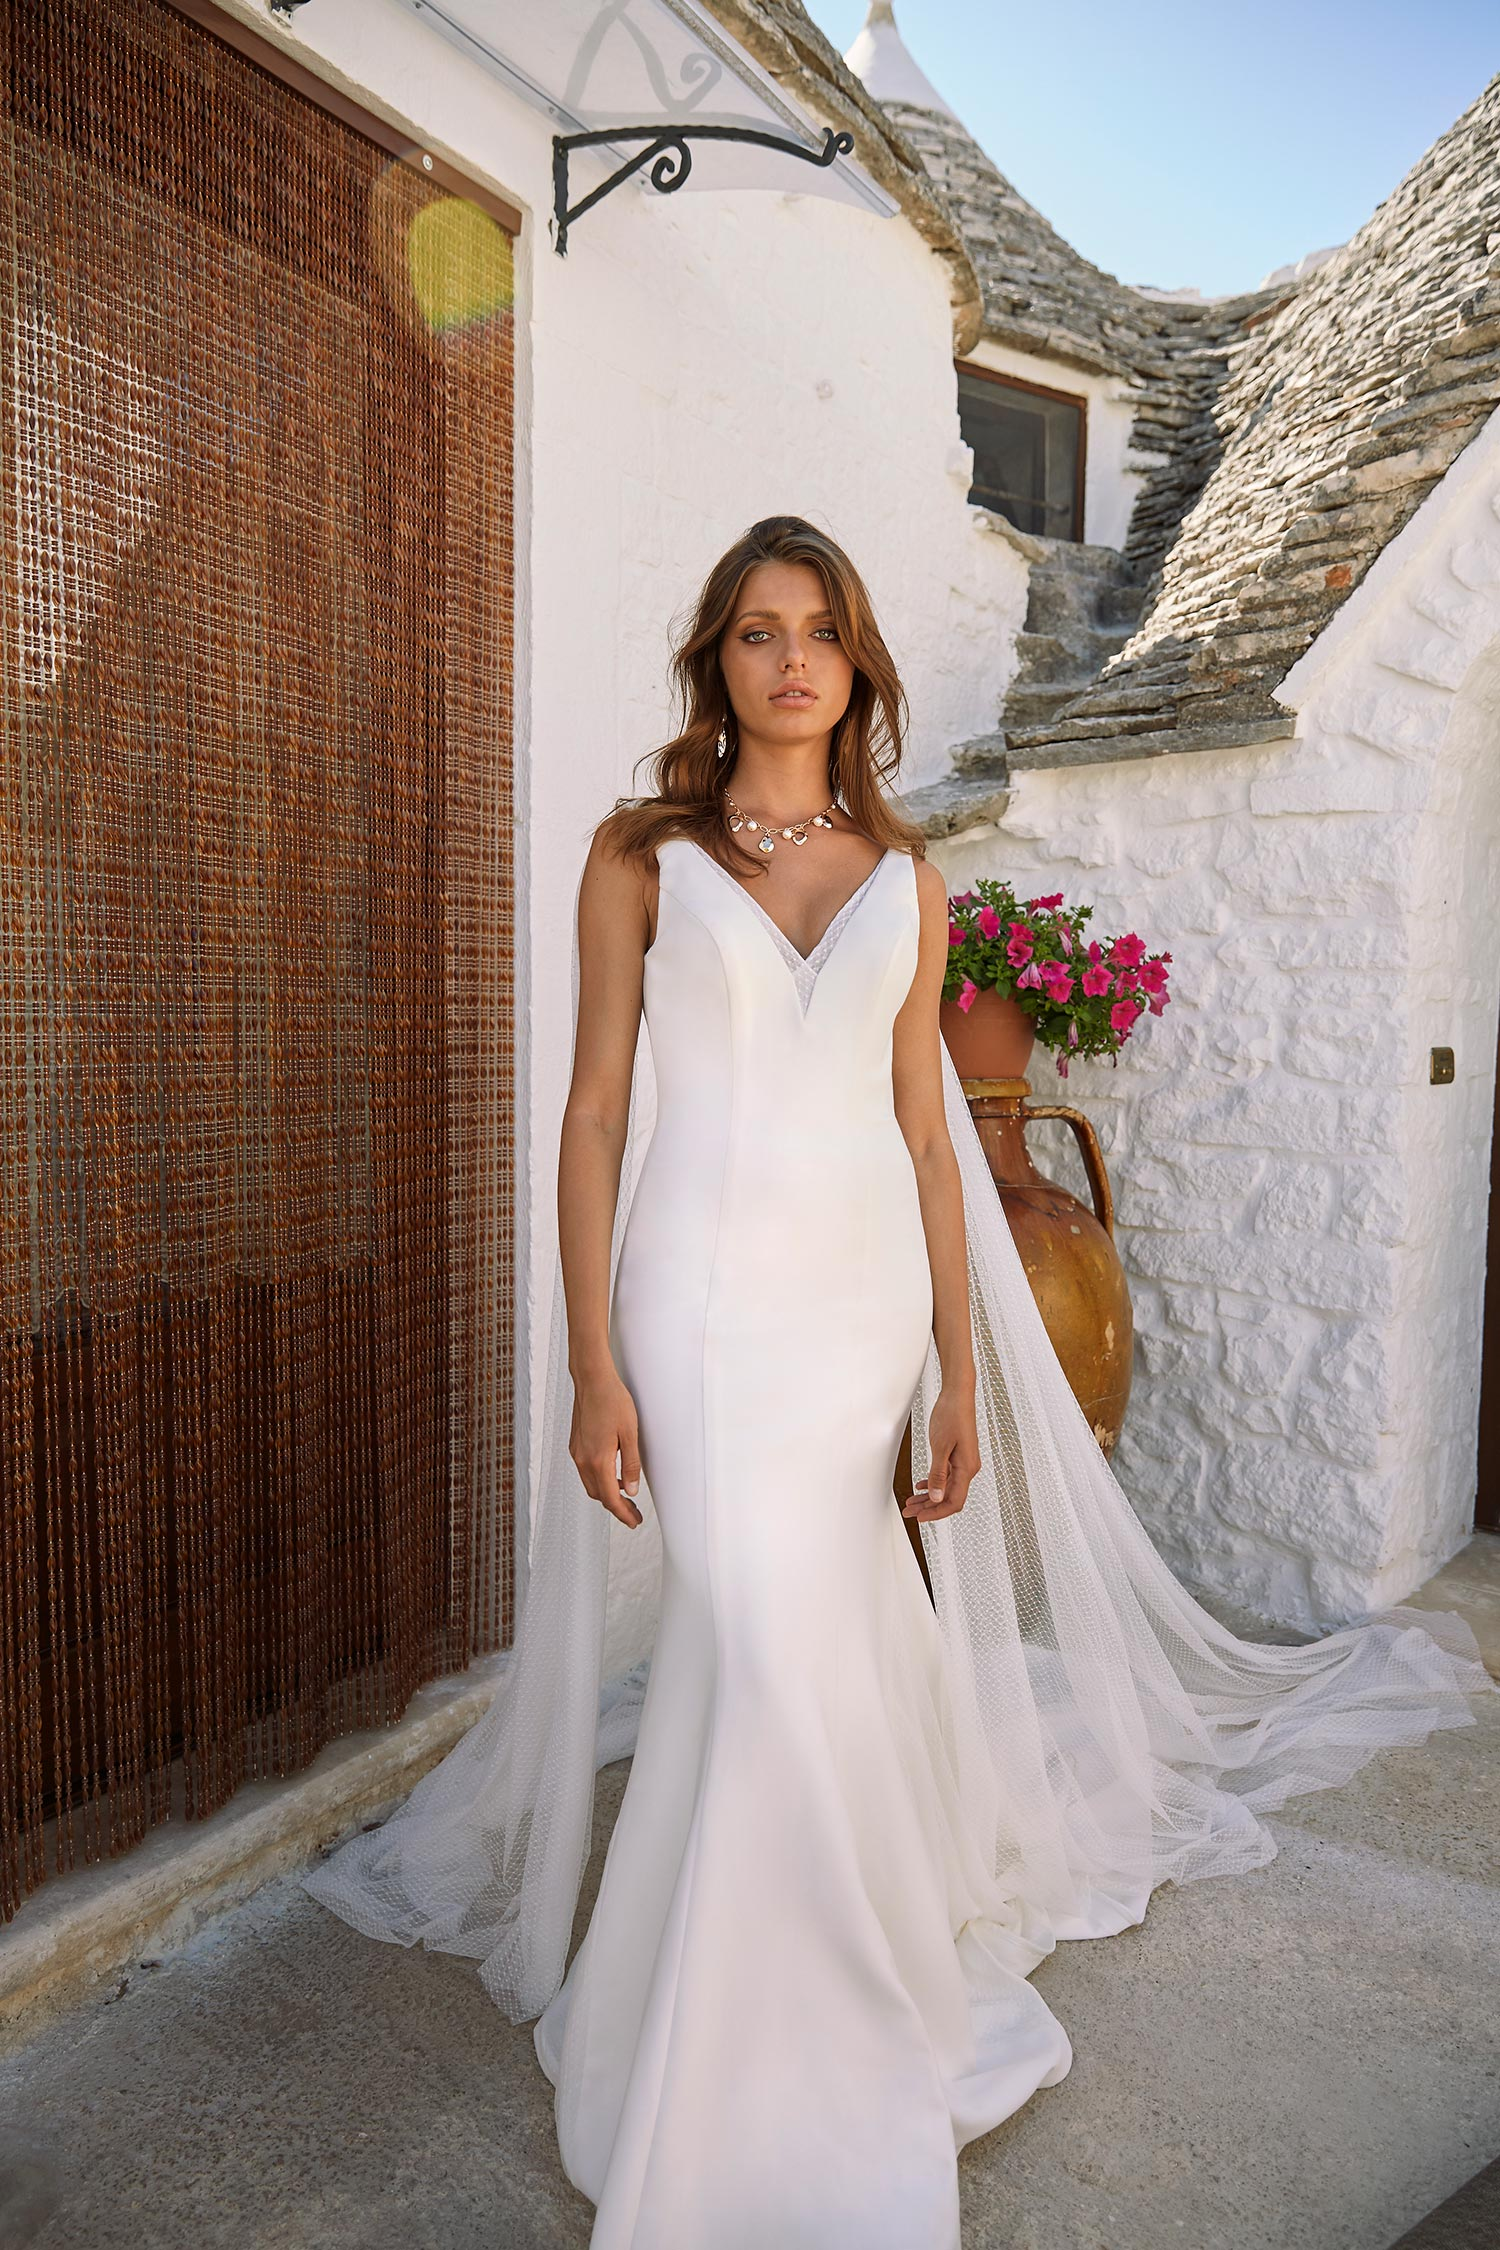 MORAN-ML12027-CREPE-GOWN-WITH-V-NECK-AND-DETACHABLE-CAPE-WEDDING-DRESS-MADI-LANE-BRIDAL1